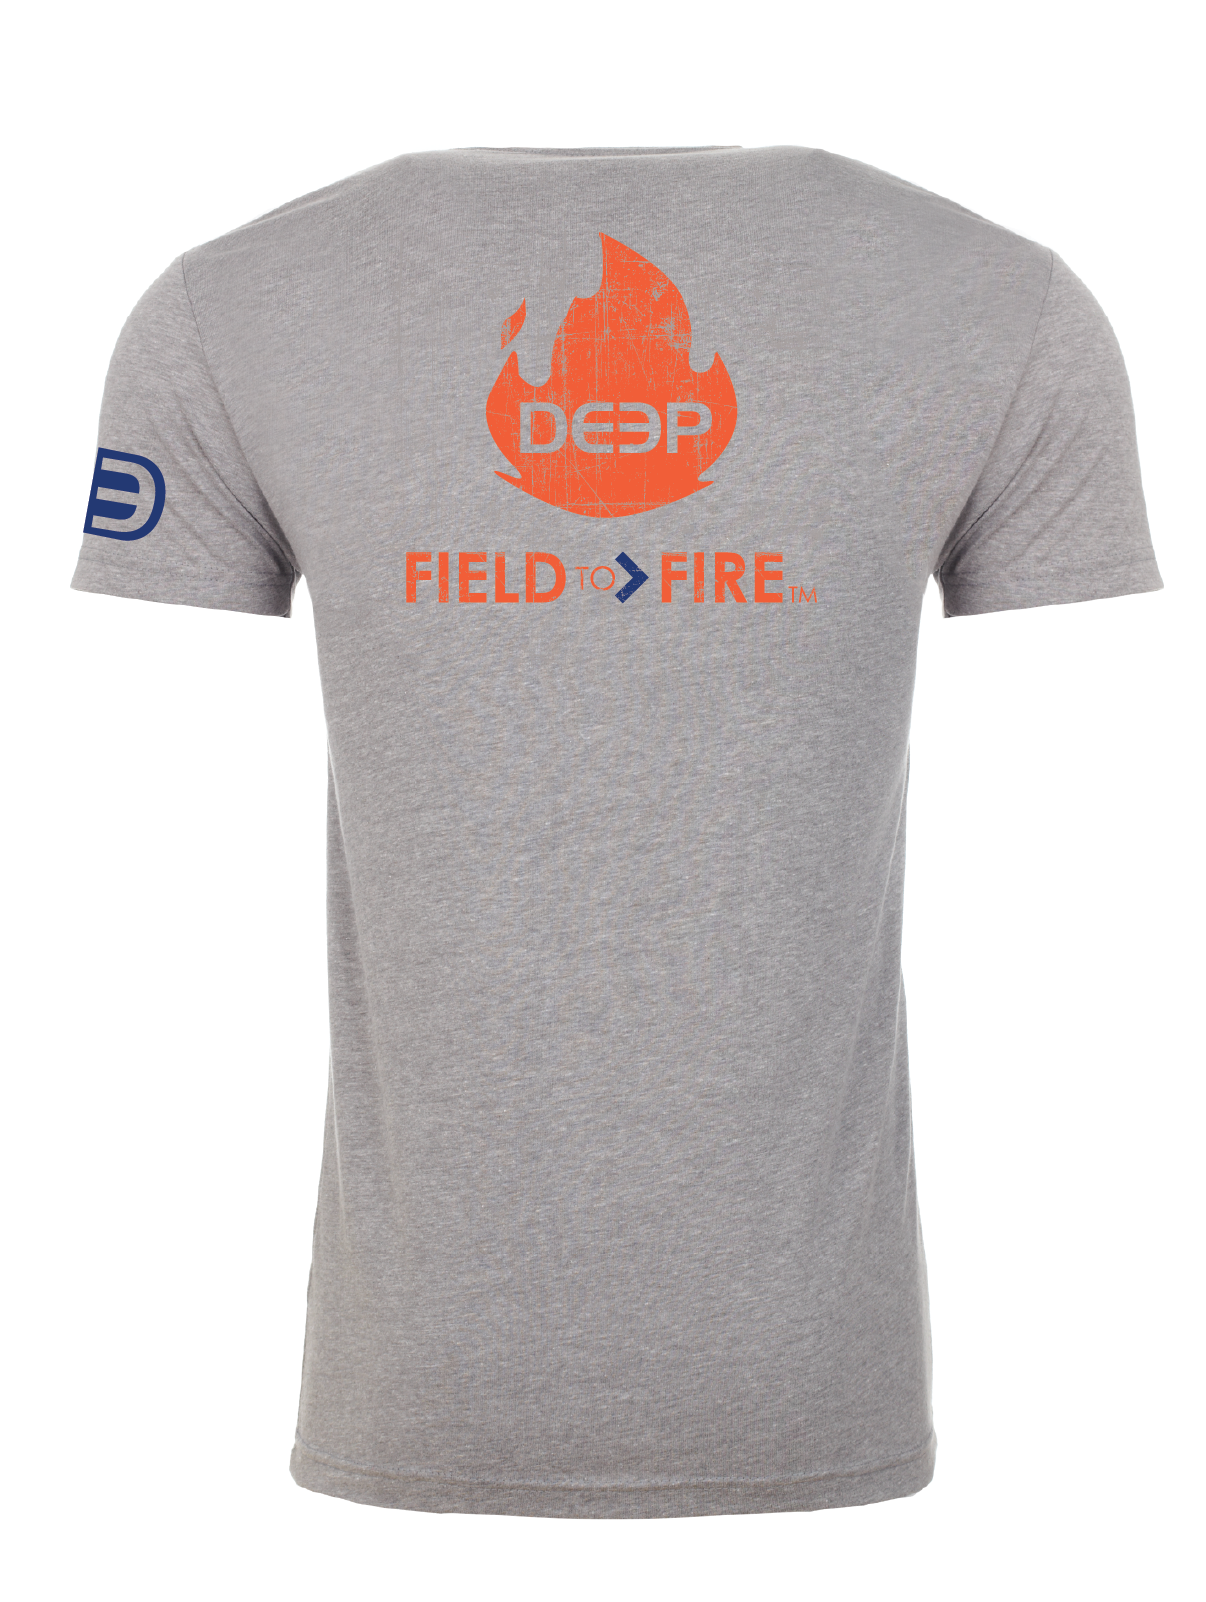 Field to Fire Heather Grey